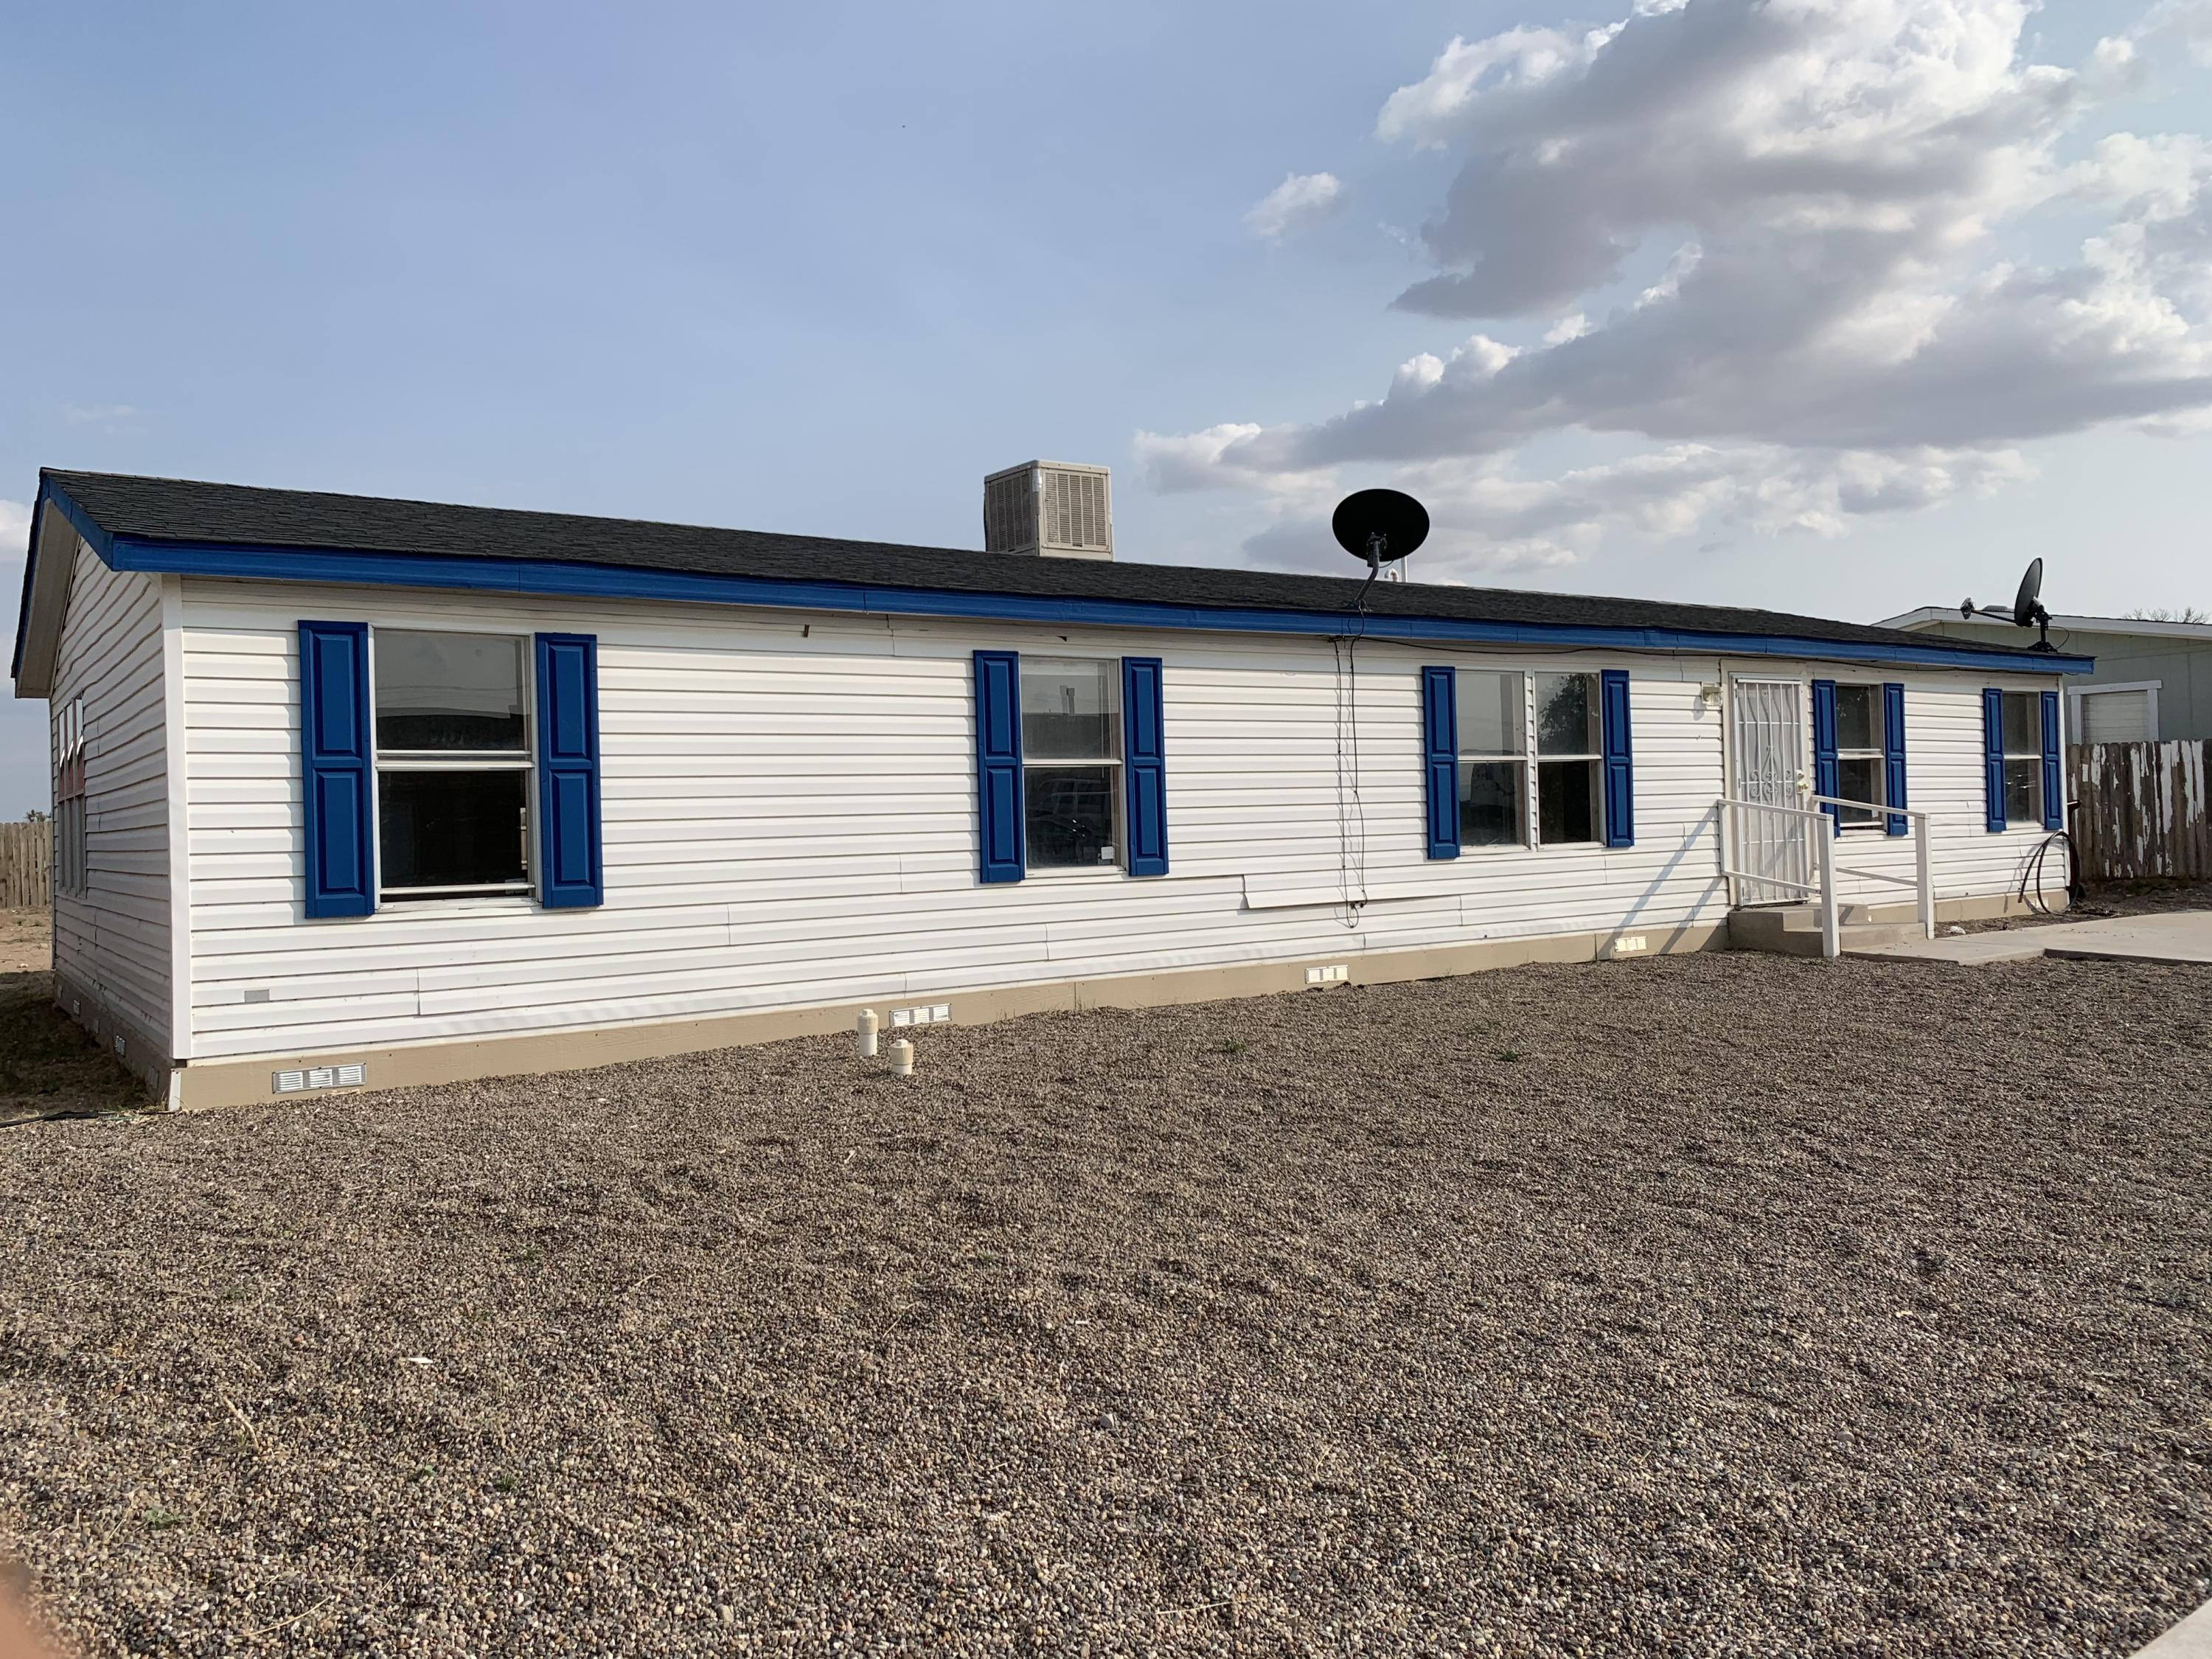 This Fleetwood manufactured home has 2 living areas, 3 bedrooms with large closets, and 2 full baths.  New carpet in living areas and bedrooms. Huge backyard, come and see the home today.